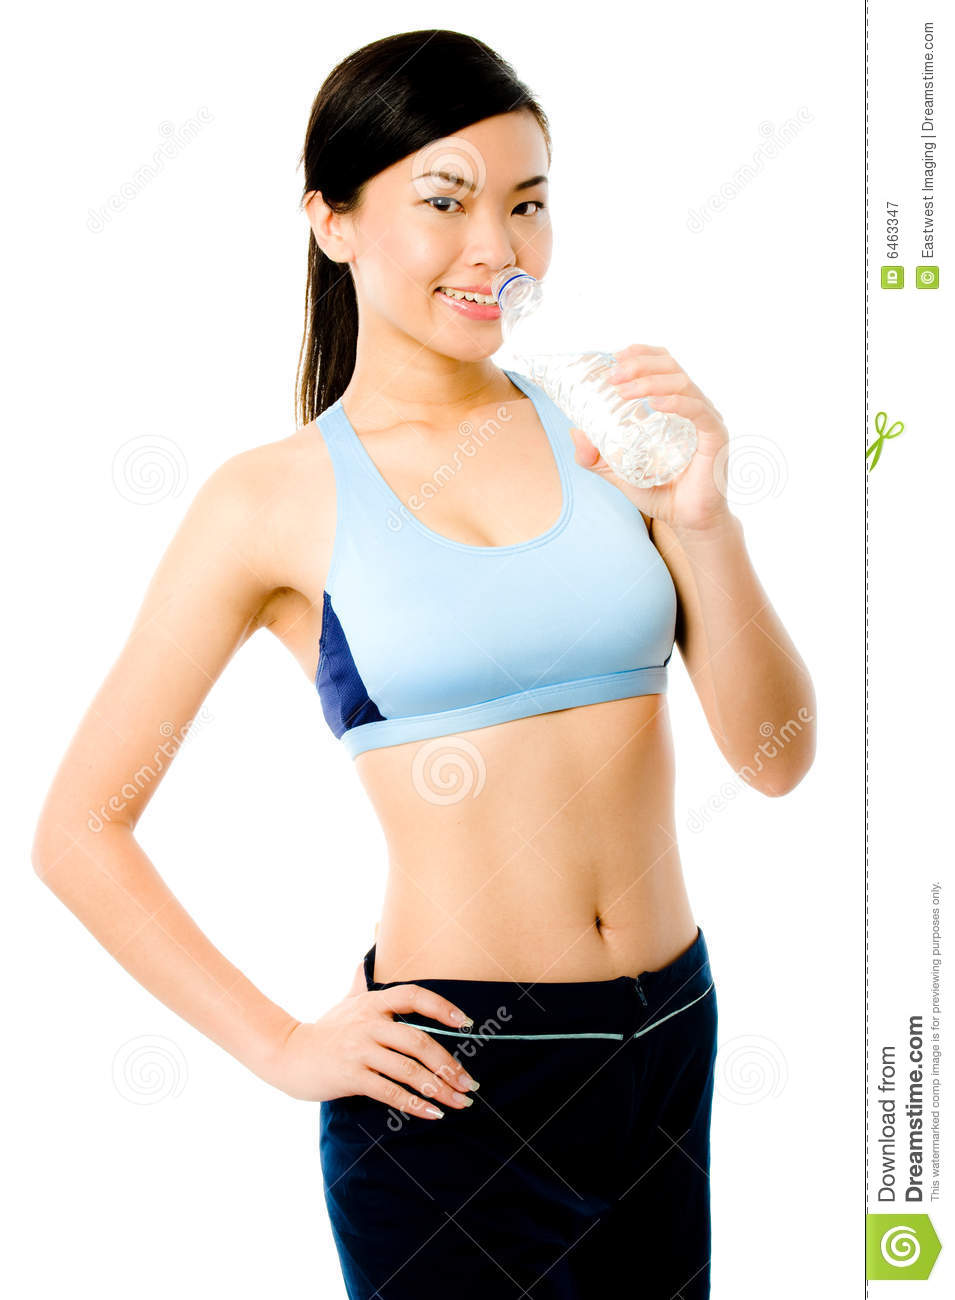 woman asian fitness